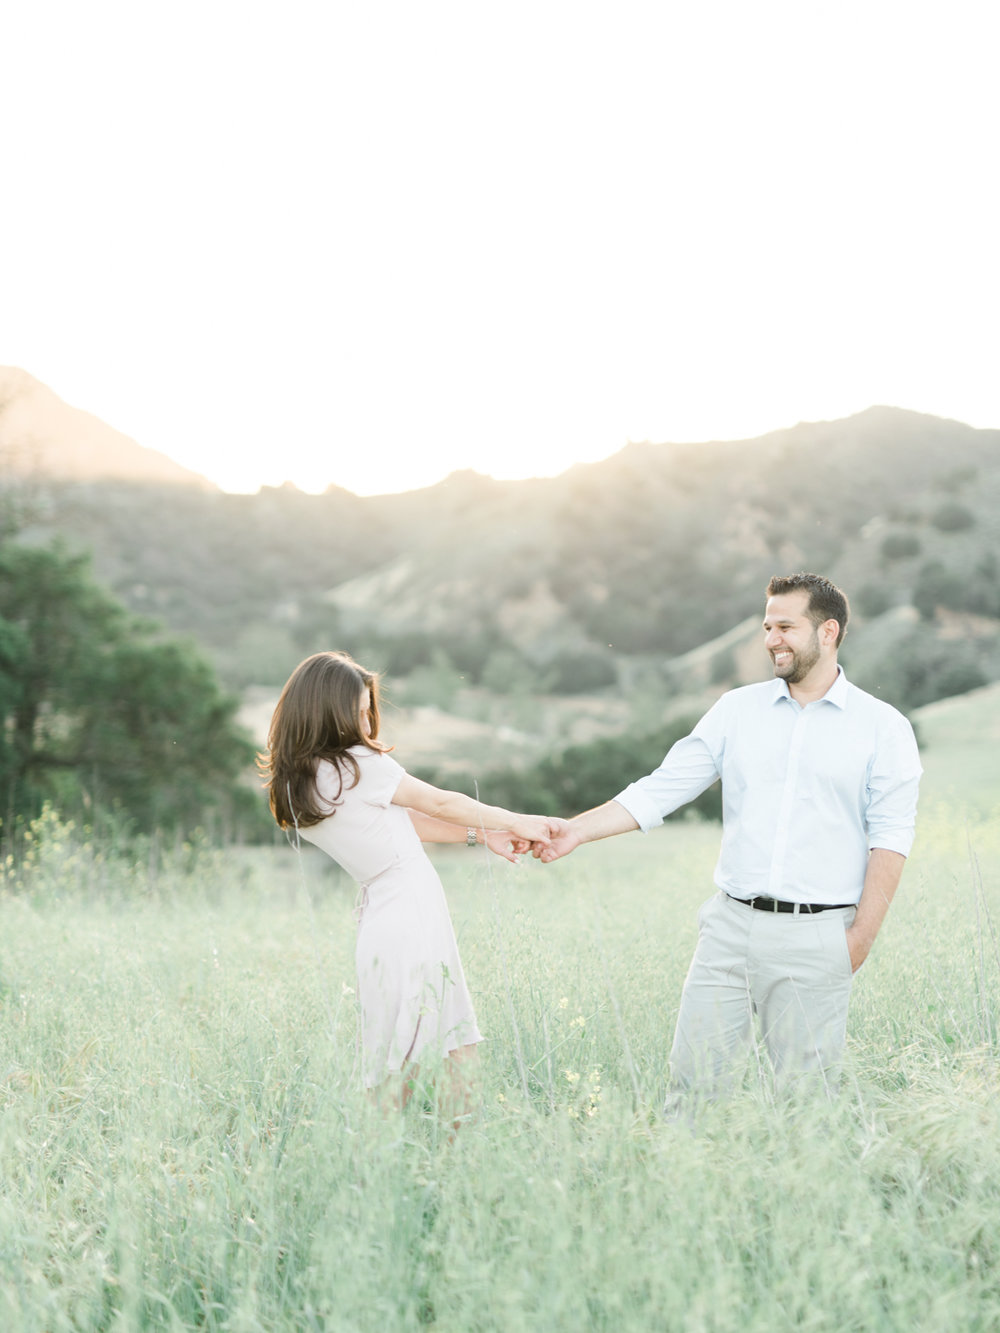 a&a_malibu_creek_state_park_engagement_session_los_angeles_fine_art_wedding_photographer-12.jpg